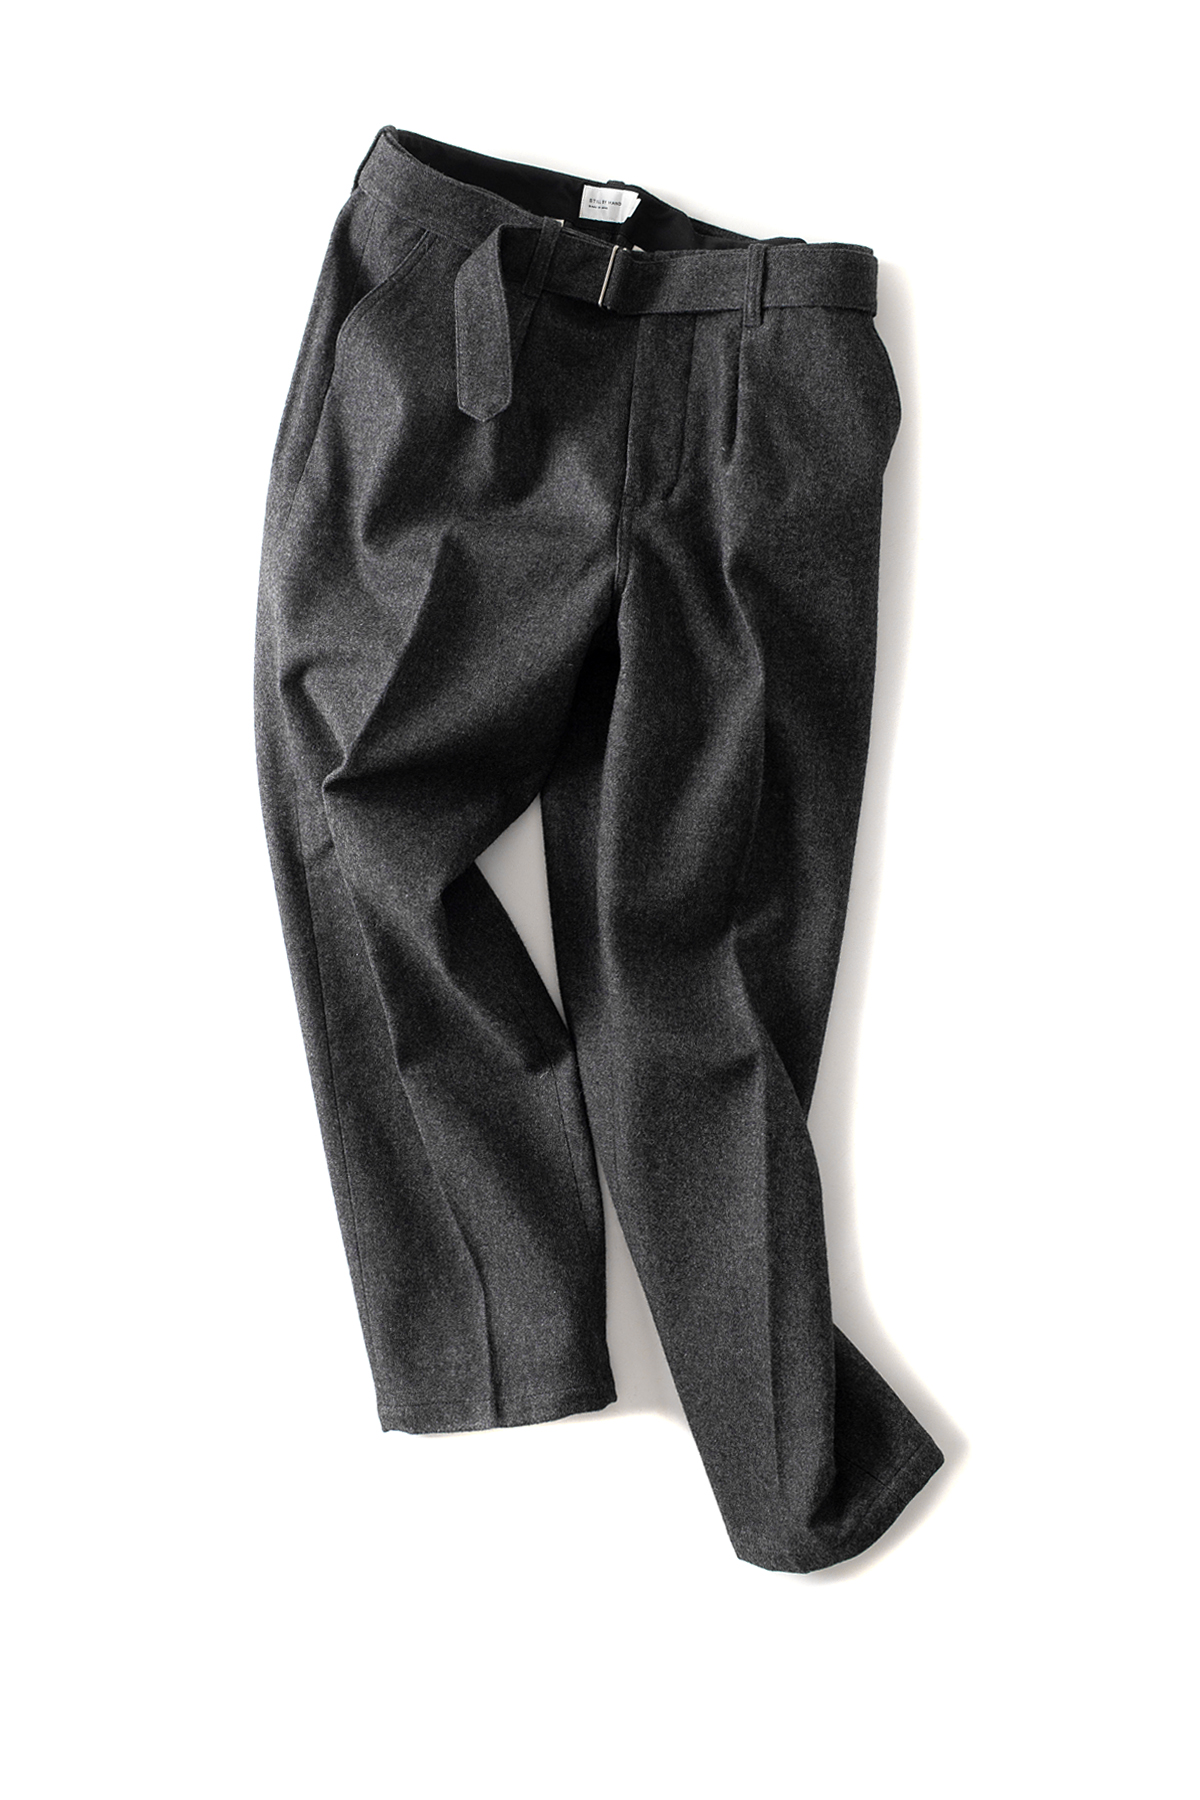 Still by Hand : Belted Melton Pants (Grey)